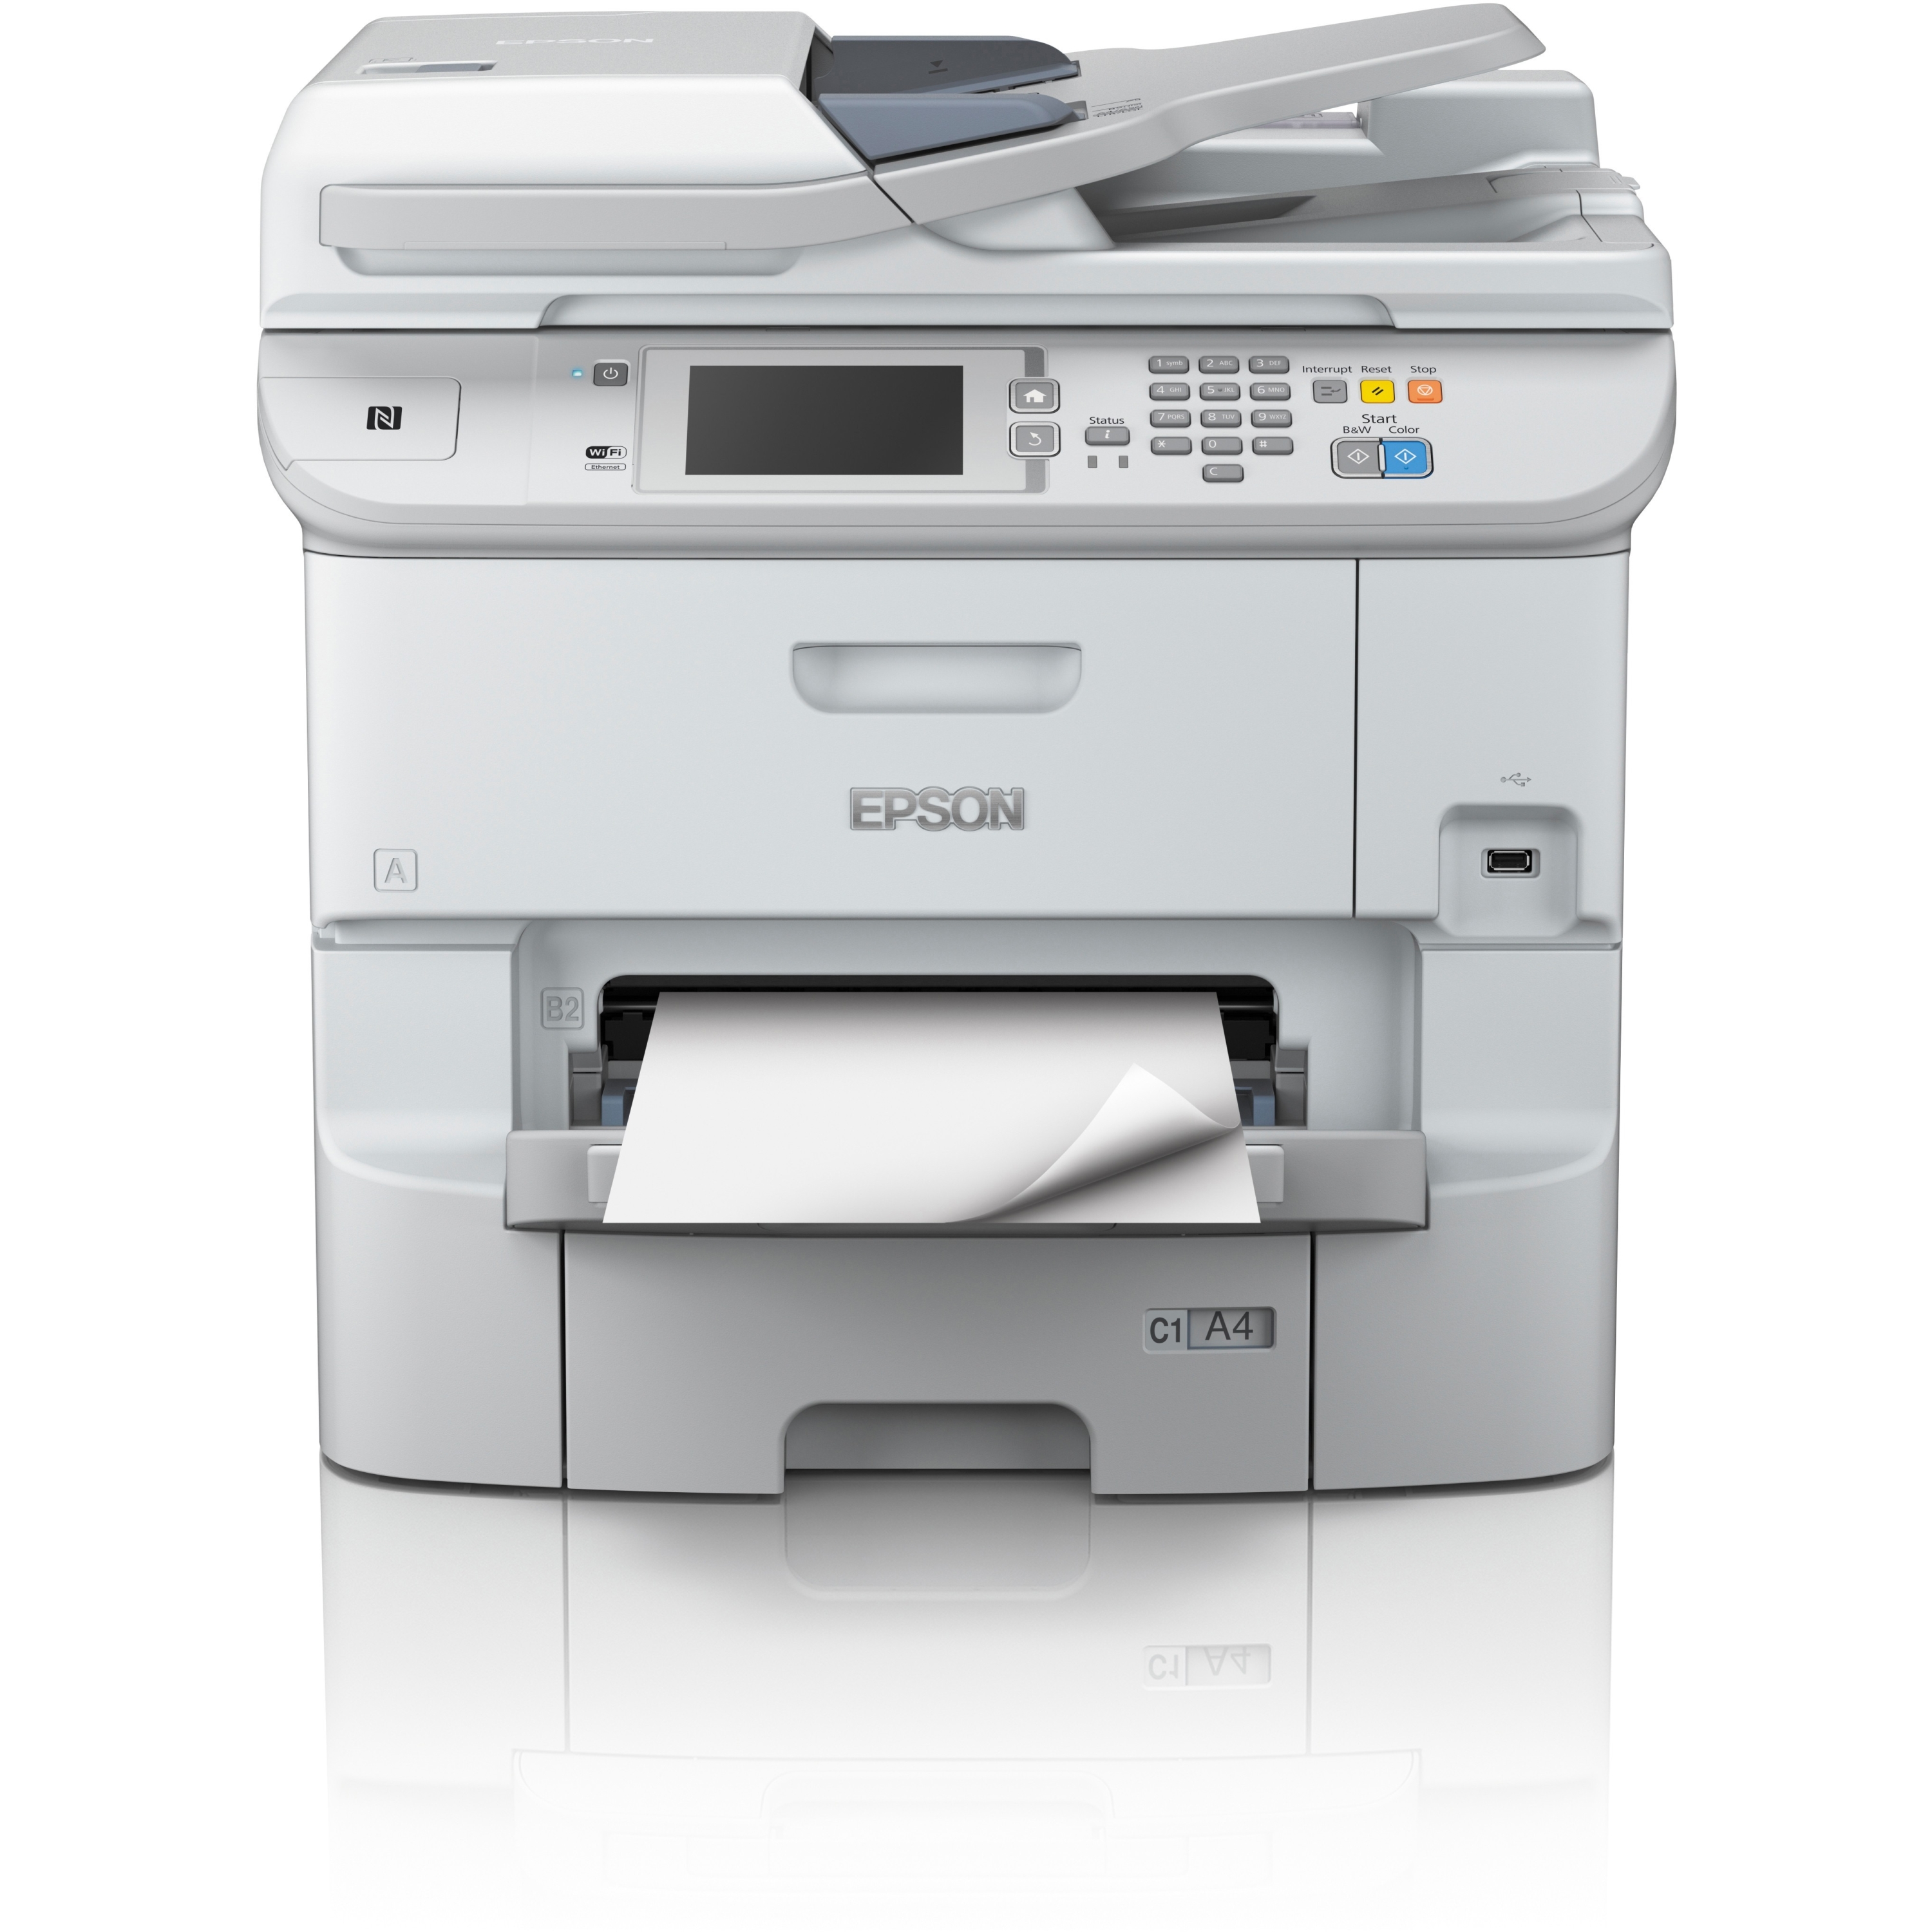 HP Pro Wireless 8000 or Epson All-in-one 610?